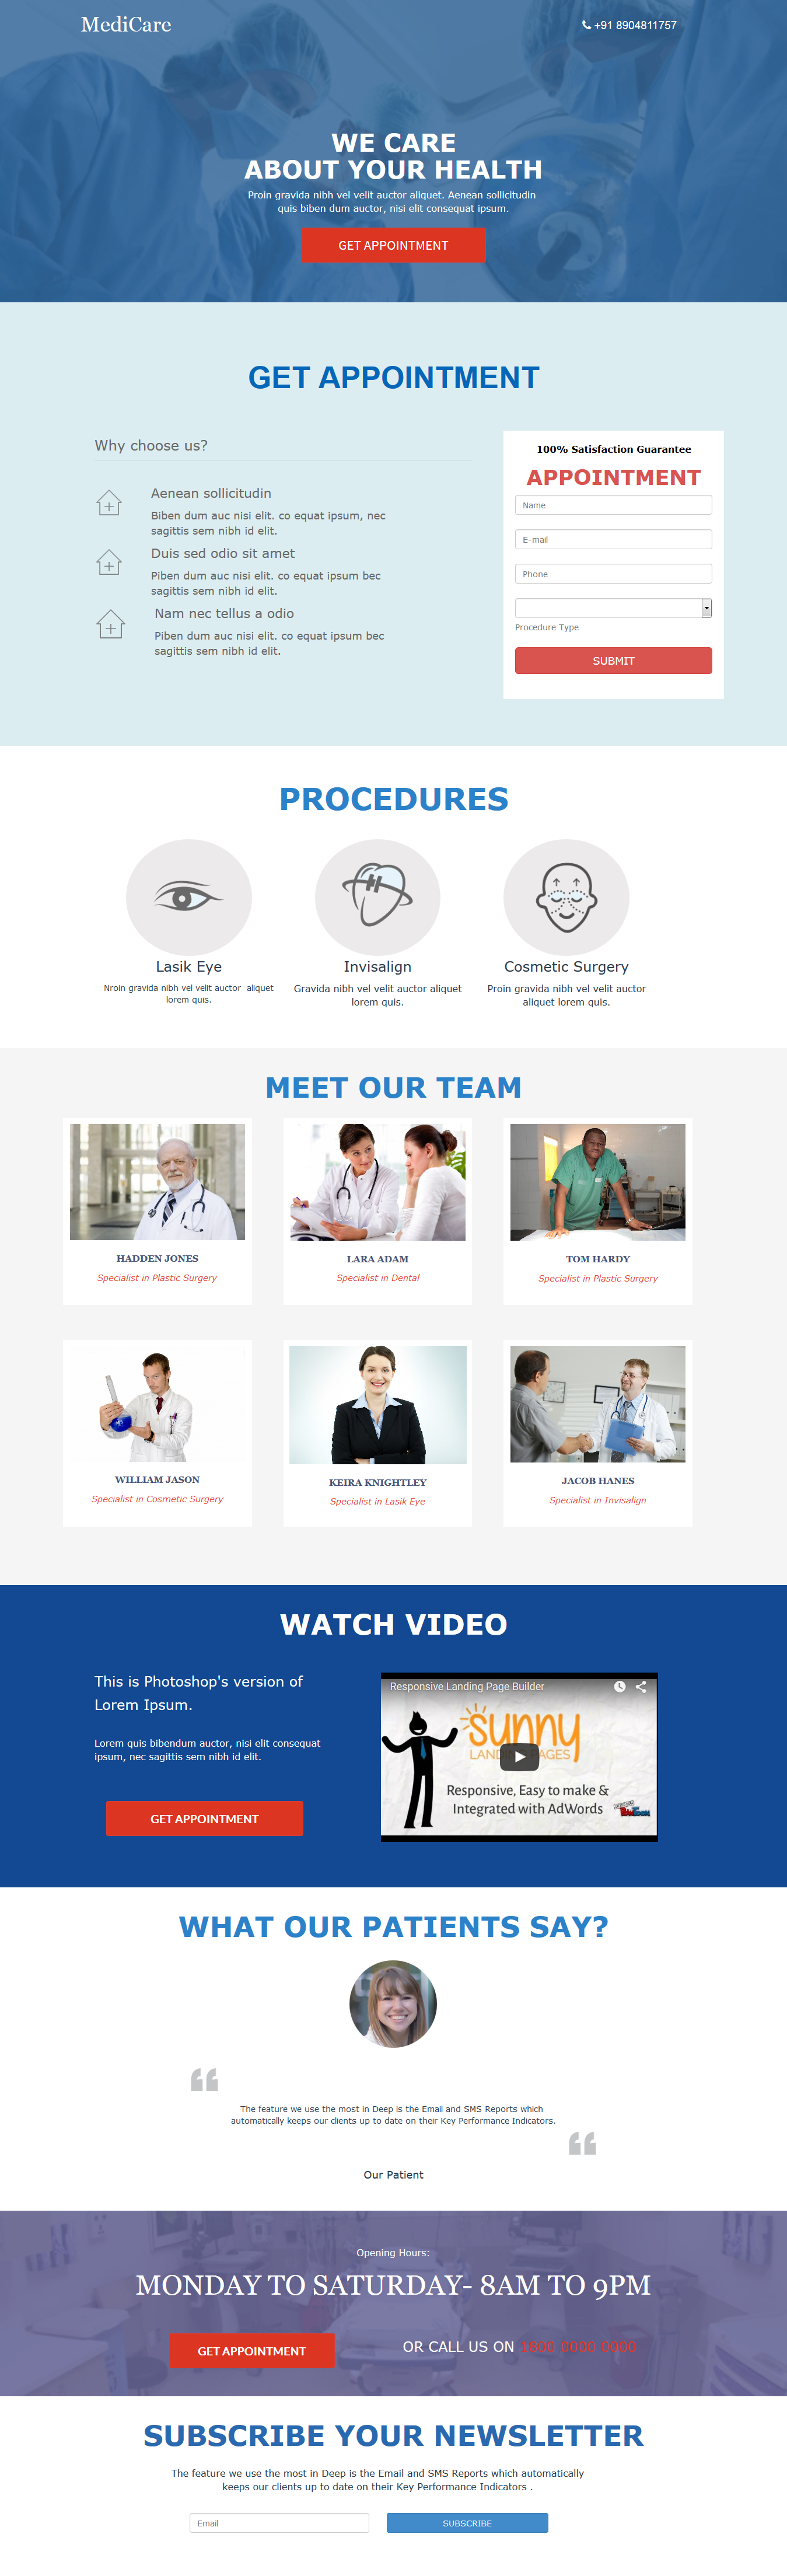 Get Appointment Landing Page Template